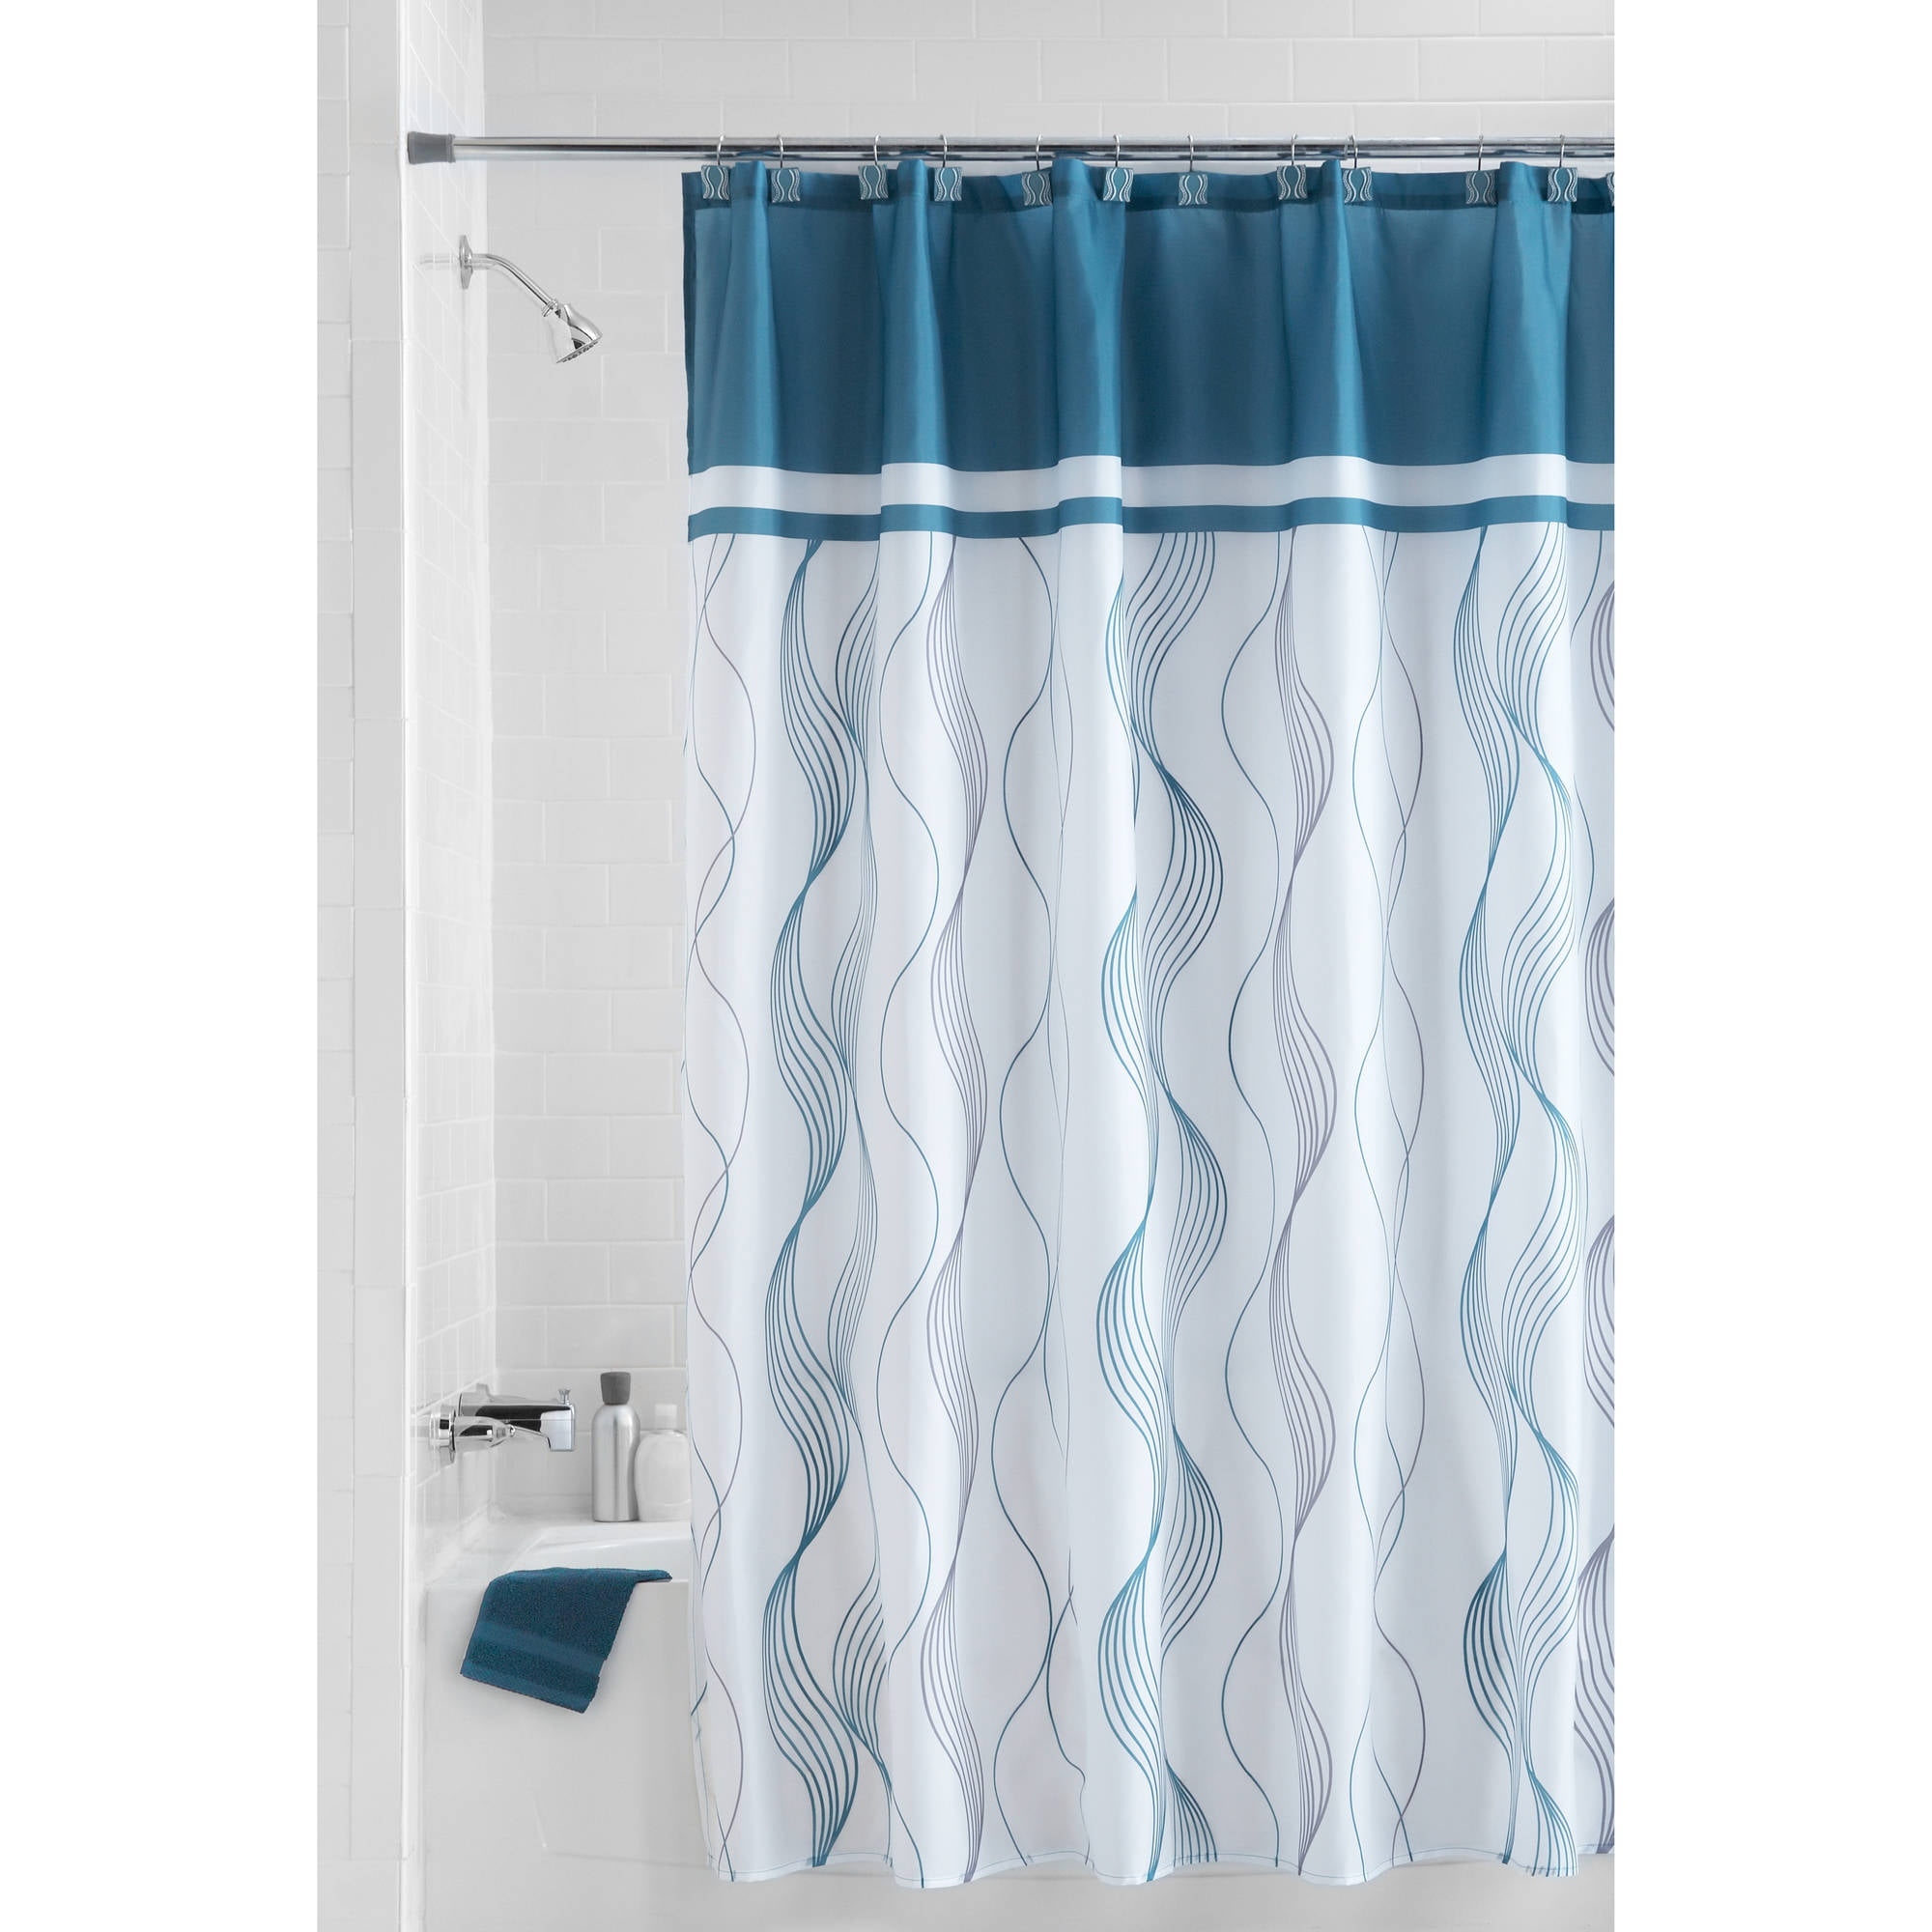 Mainstays Teal Cosmo 13 Piece Fabric Shower Curtain Set Hooks Included